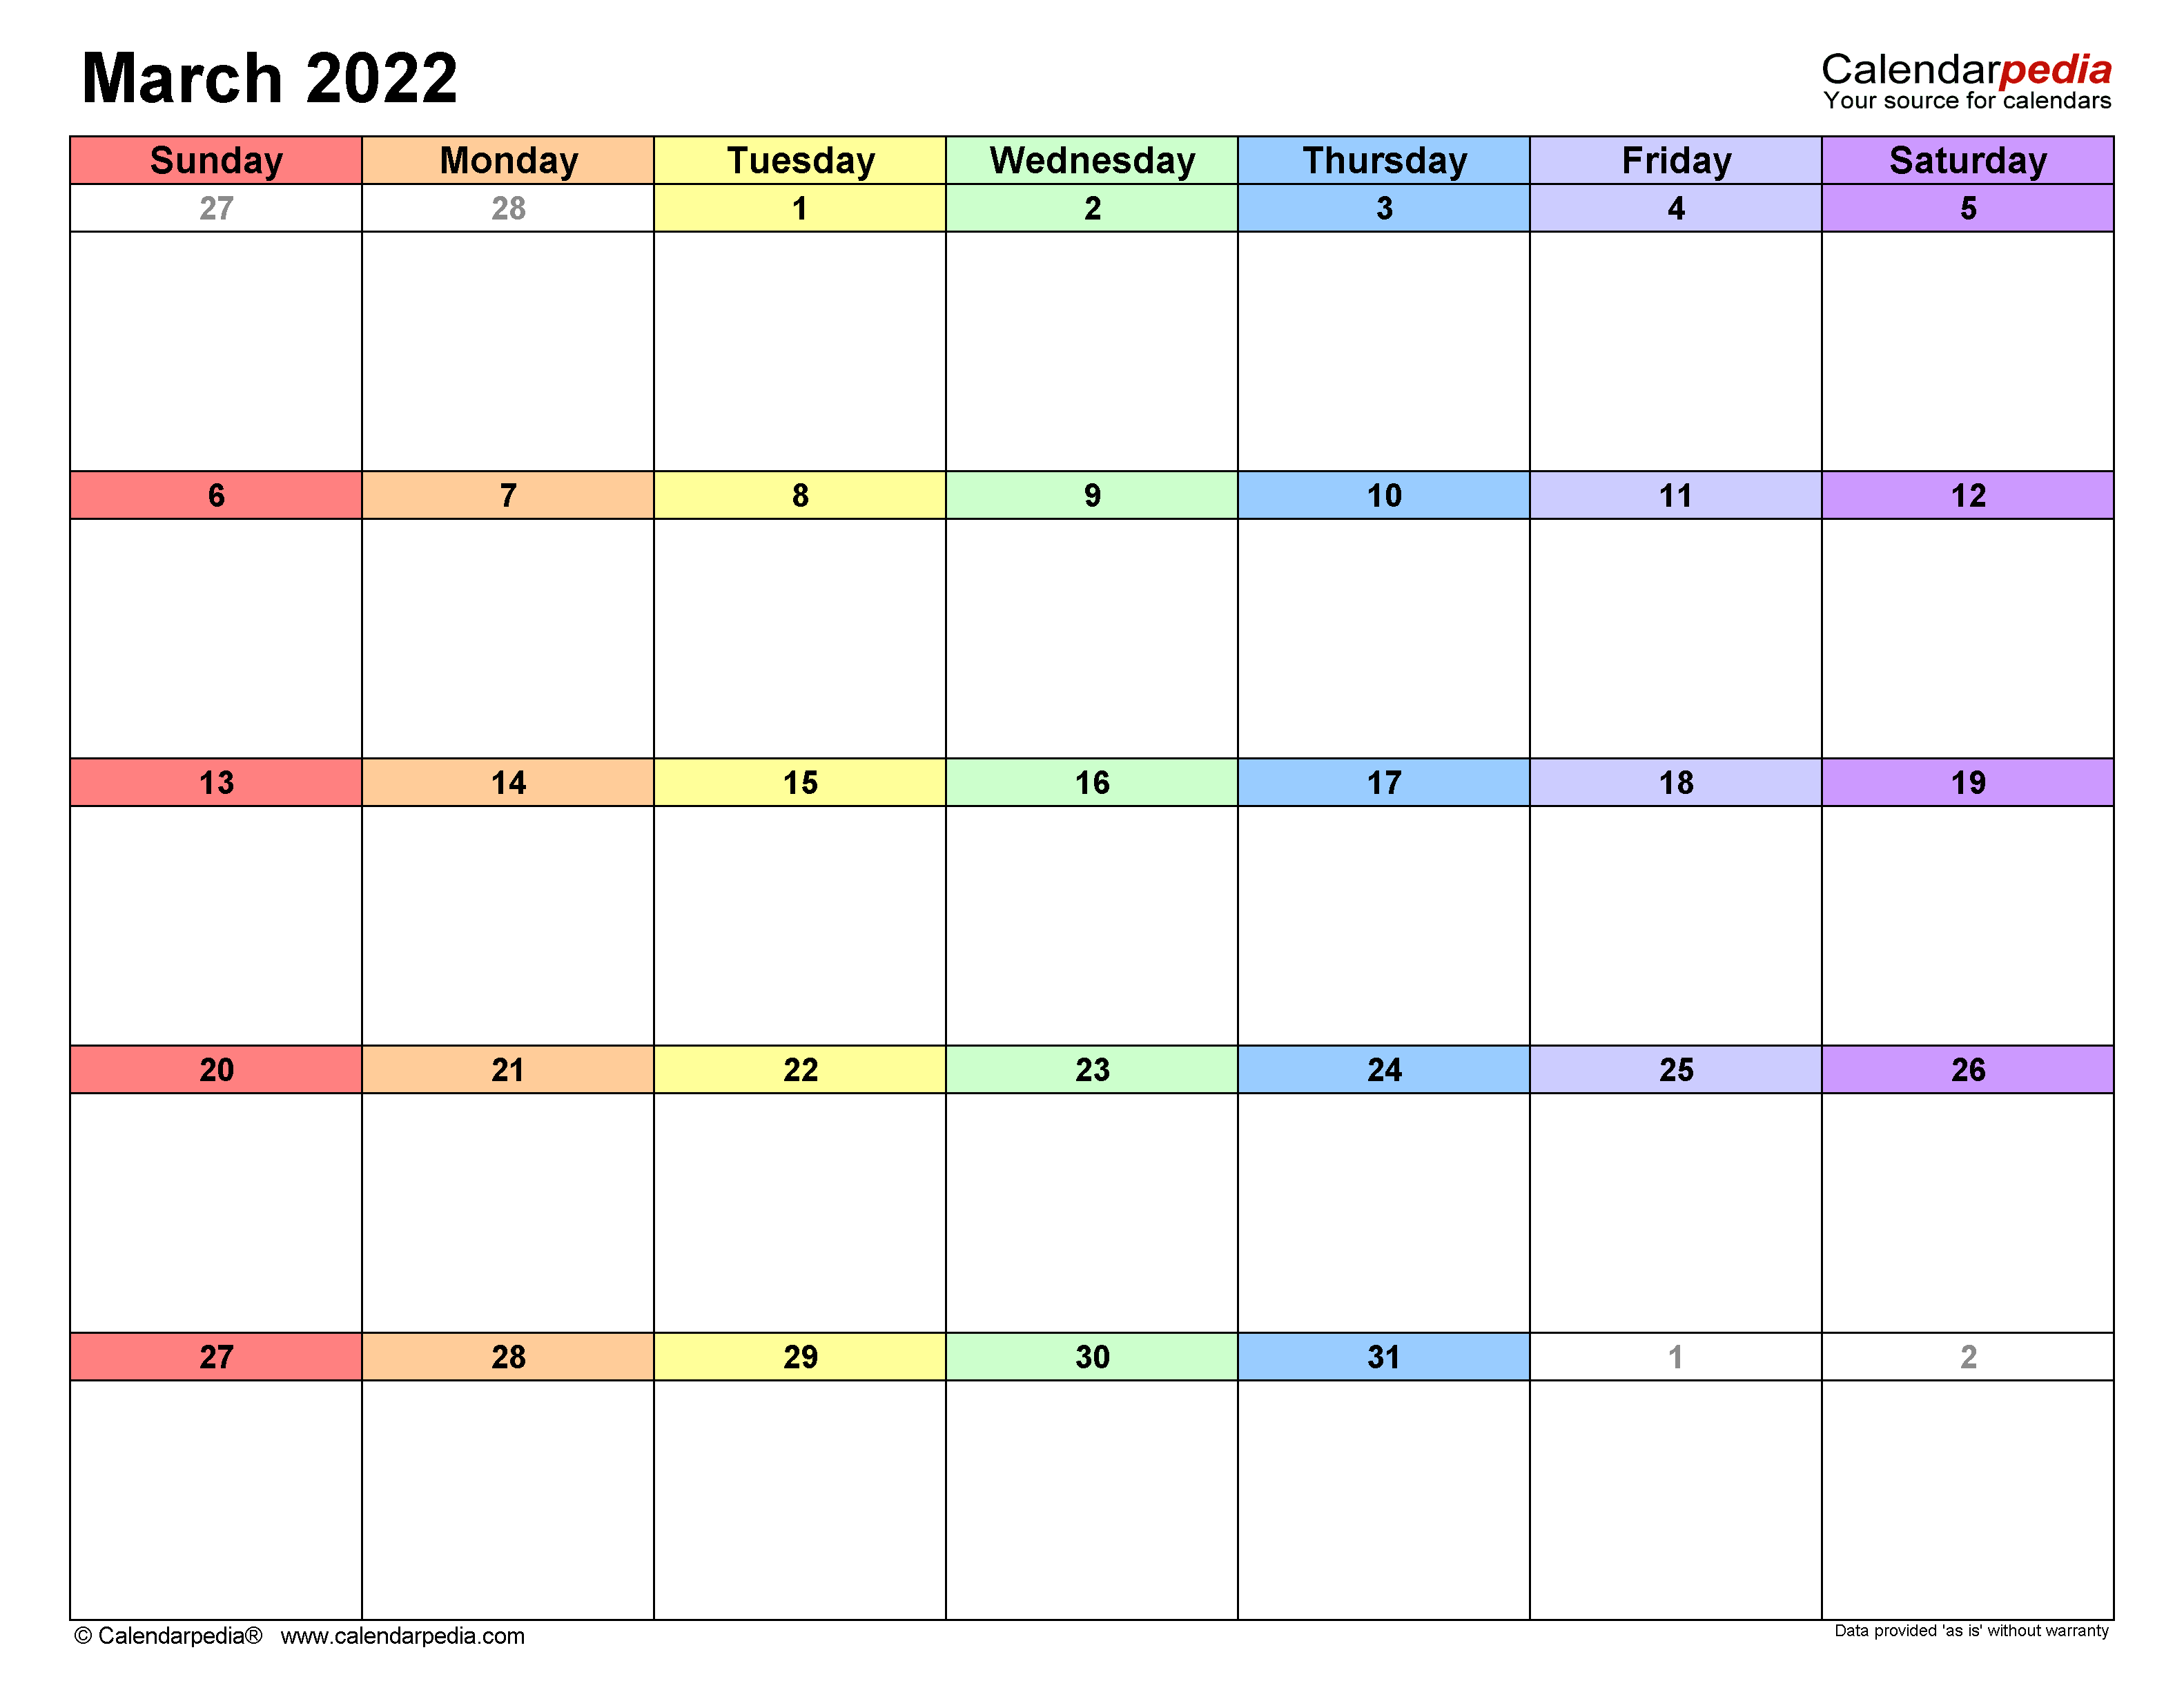 March 2022 Calendar | Templates For Word, Excel And Pdf Throughout March 2022 Calendar Free Printable